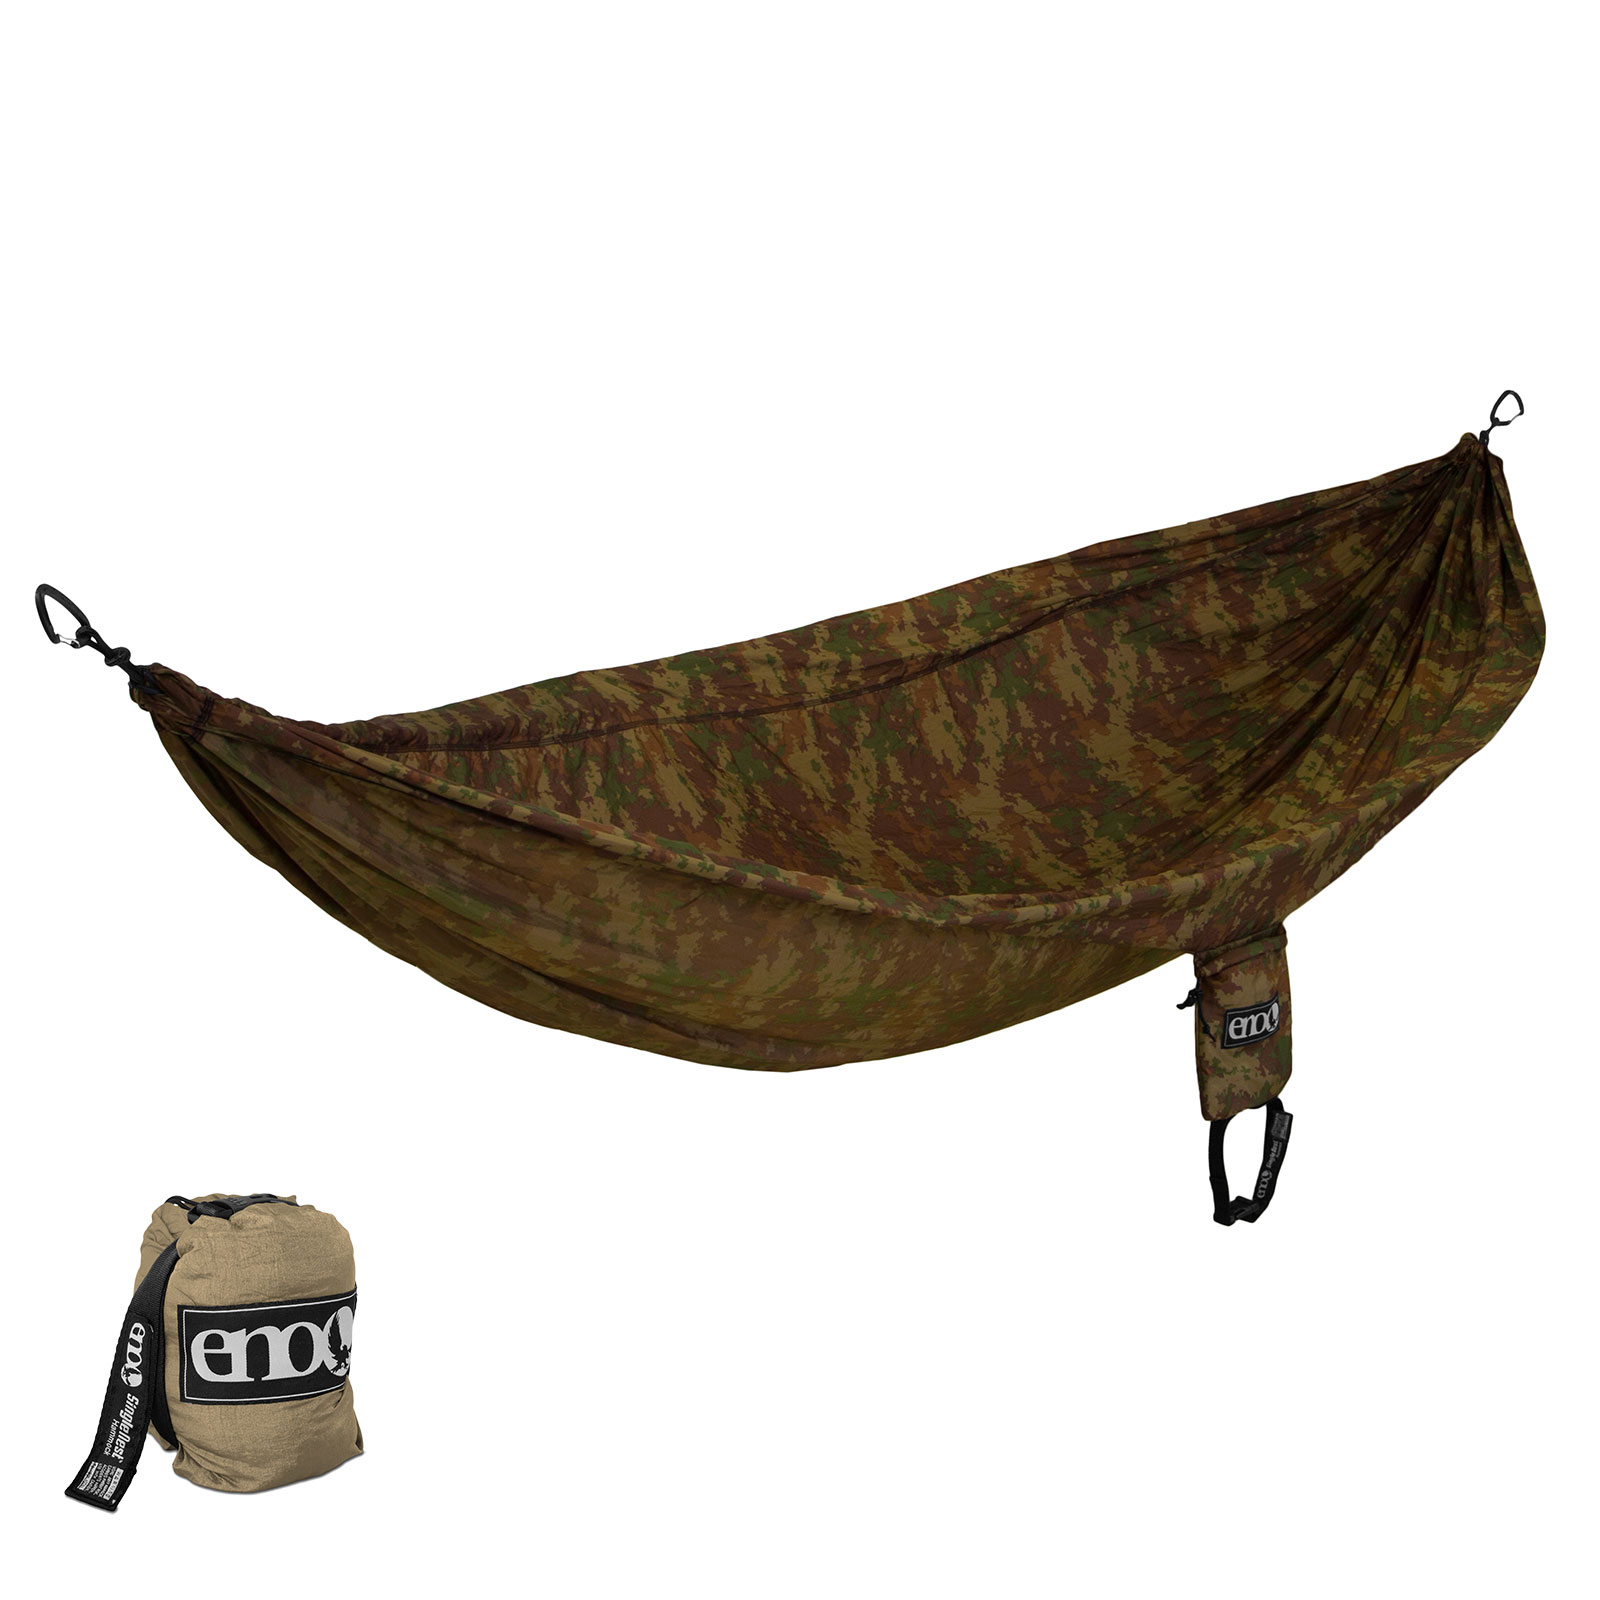 Eagles Nest Outfitters Eno Doublenest Camonest Xl Hammock